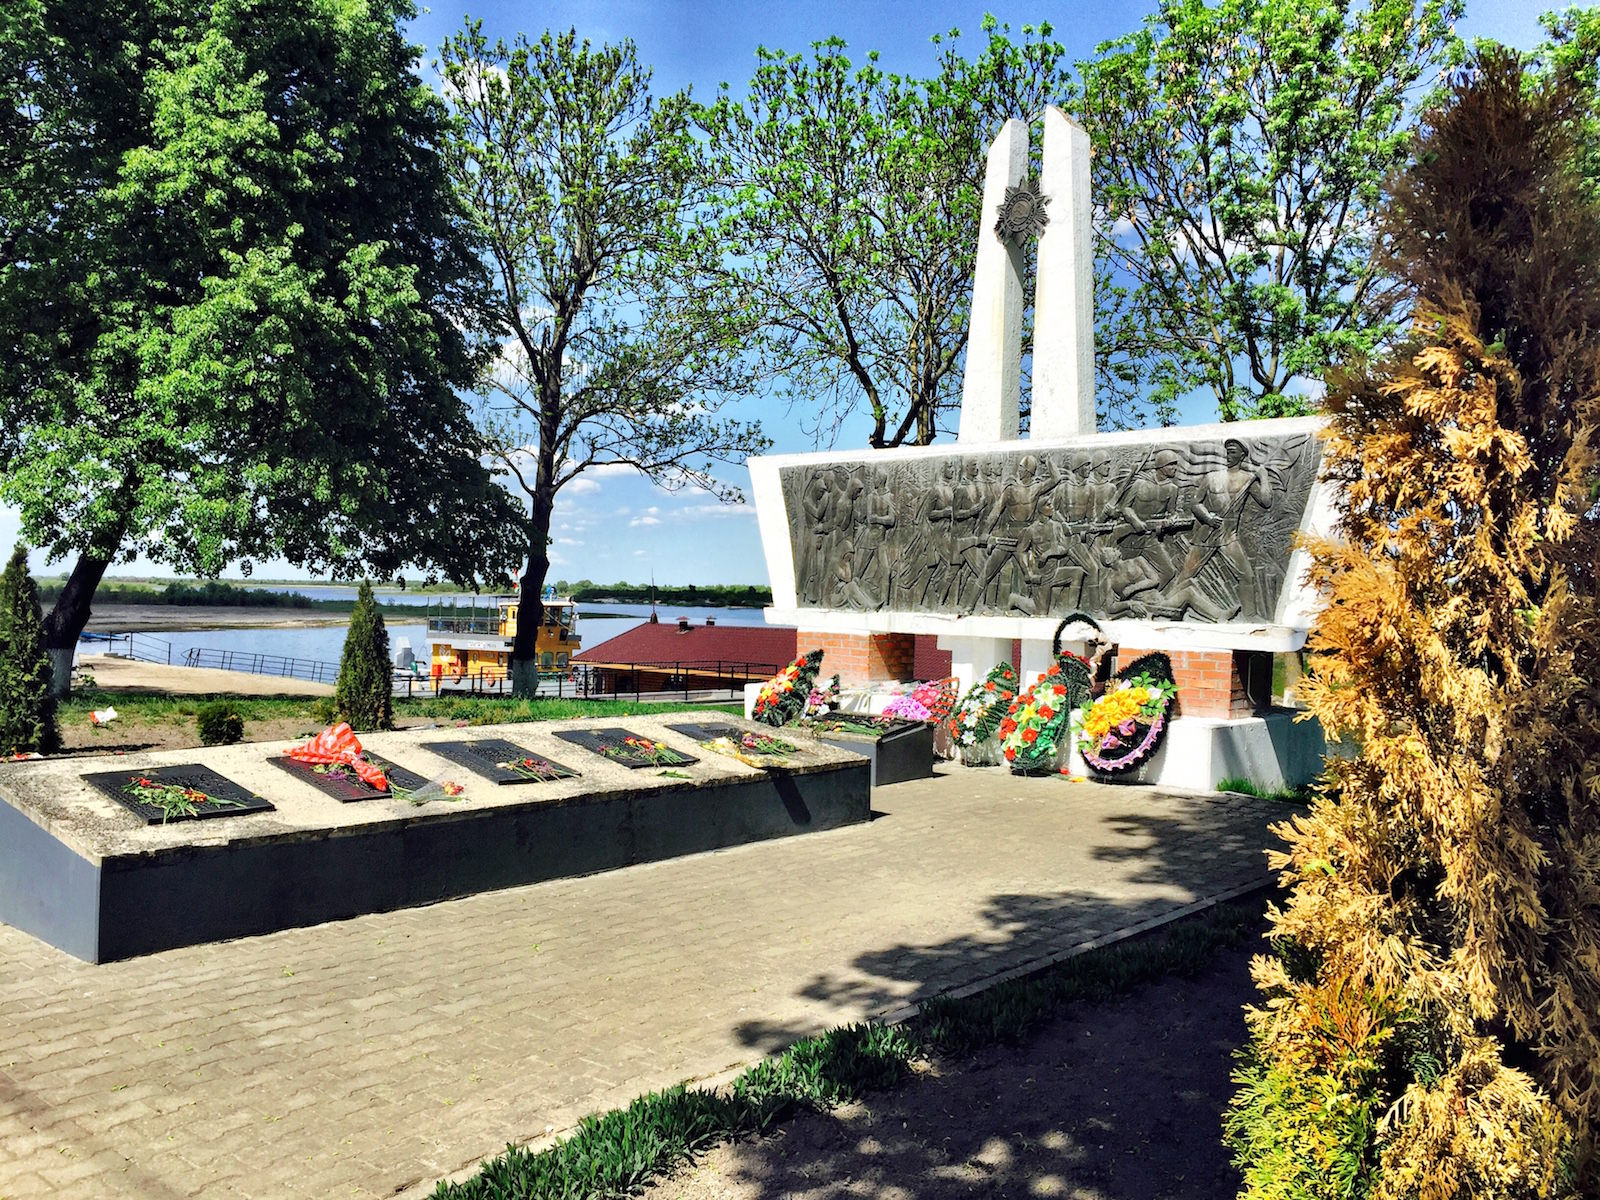 Soldier's memorial in Turov Turau Belarus